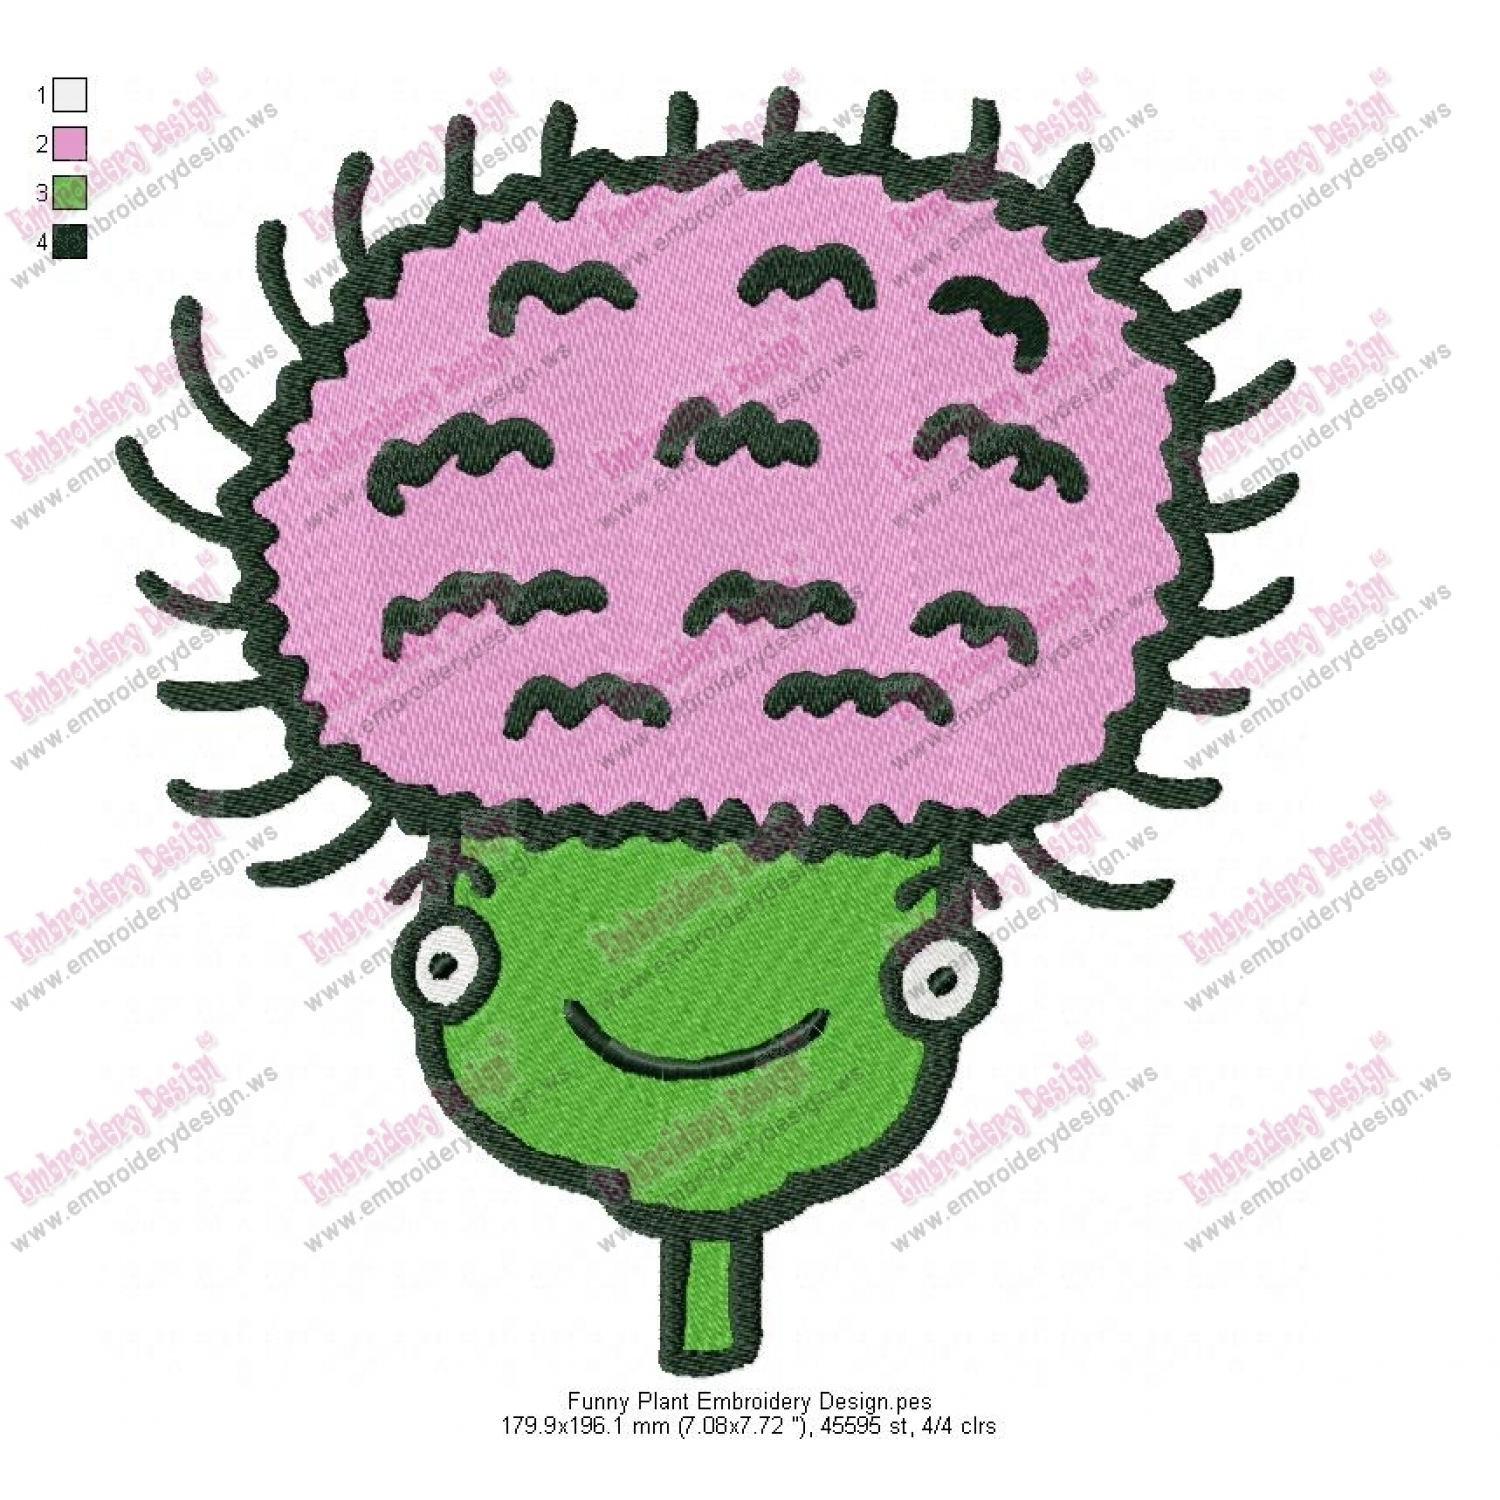 Funny plant embroidery design